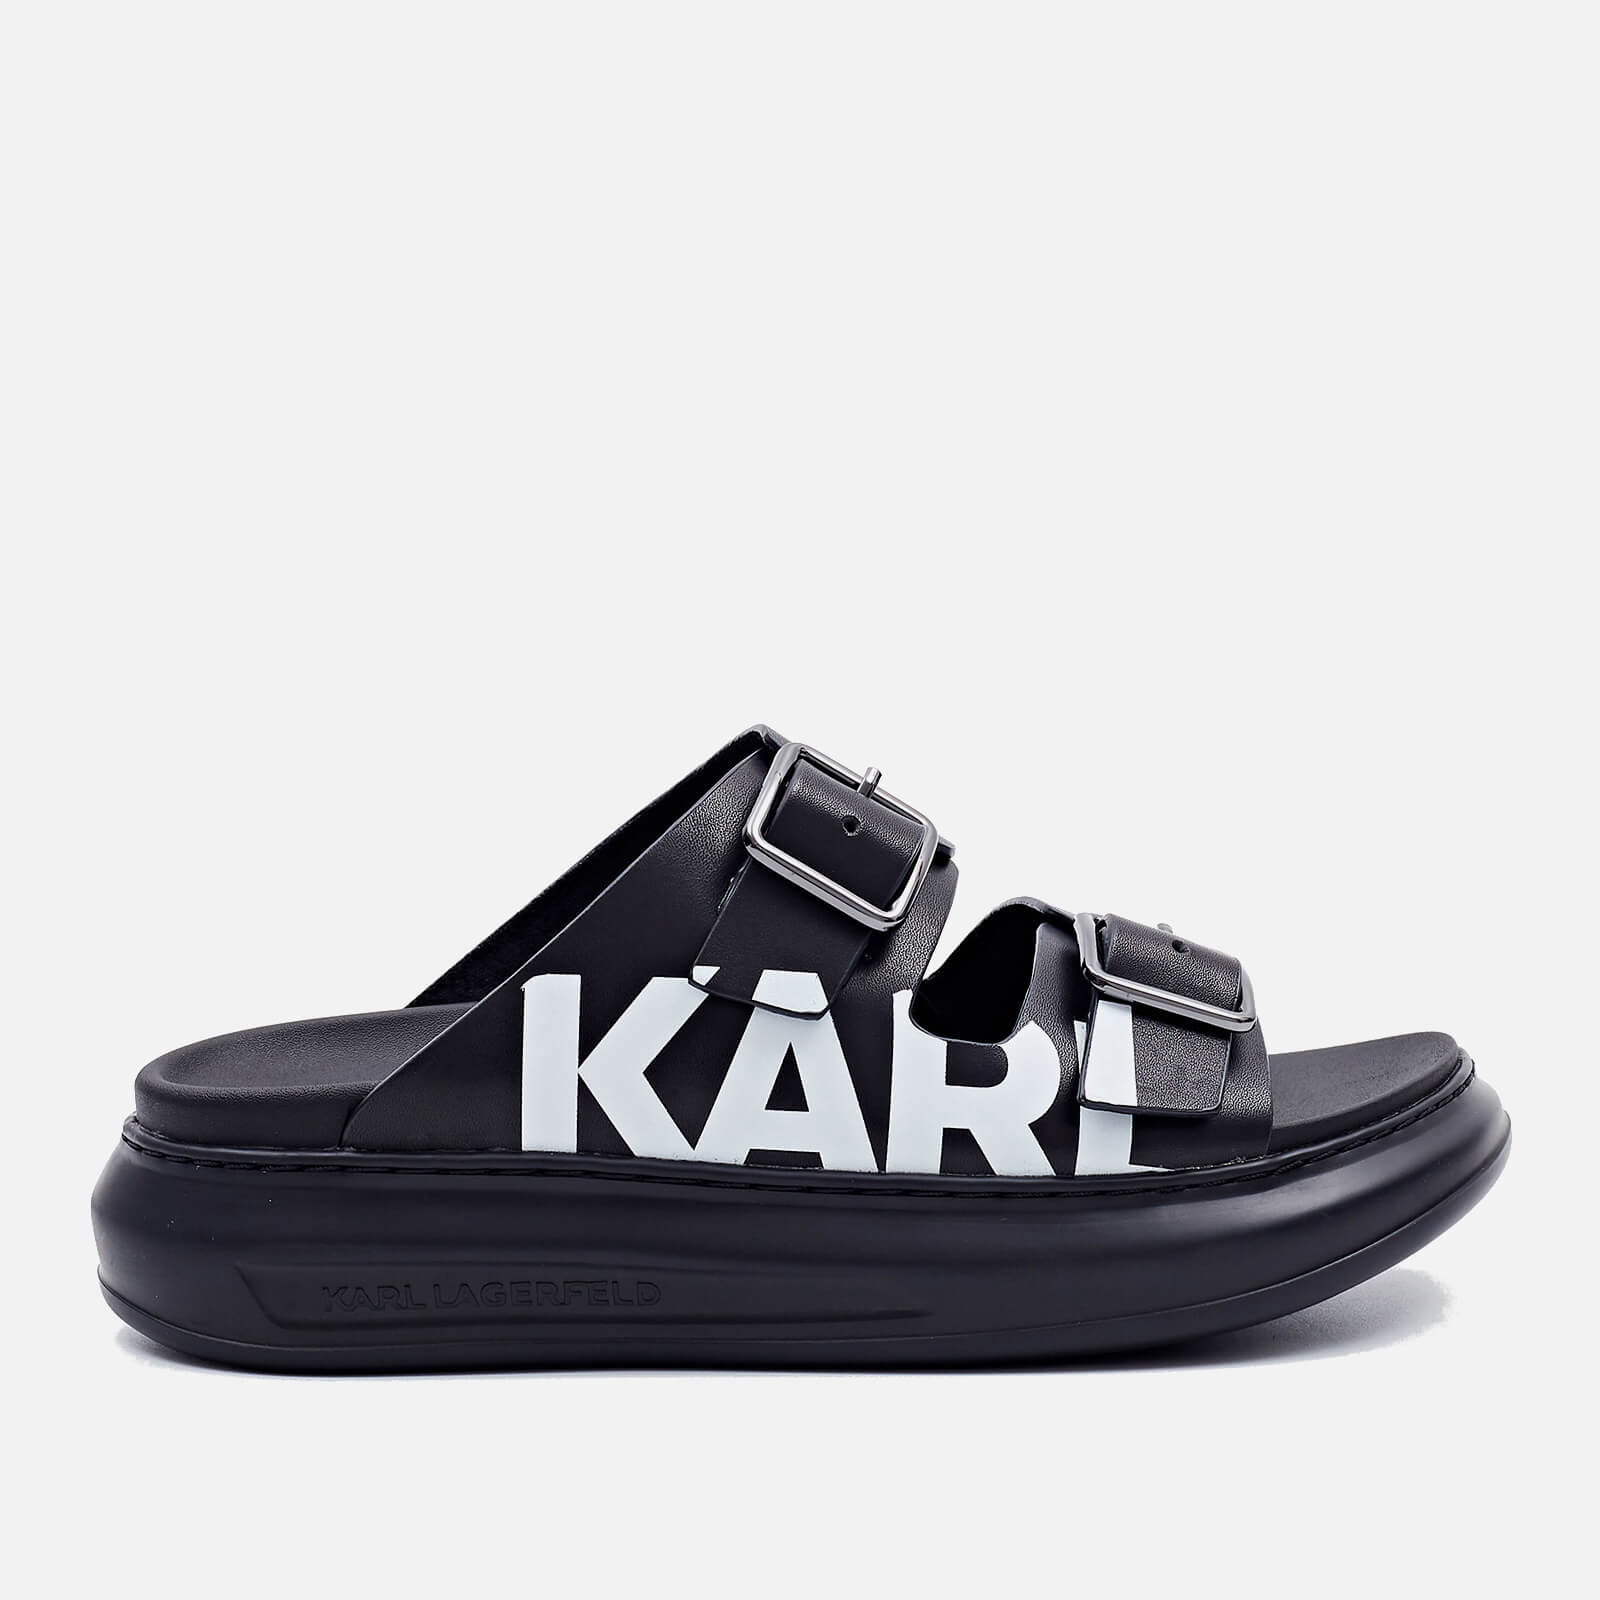 Karl Lagerfeld Womens Kapri Leather Flatform Sandals Black Uk 5